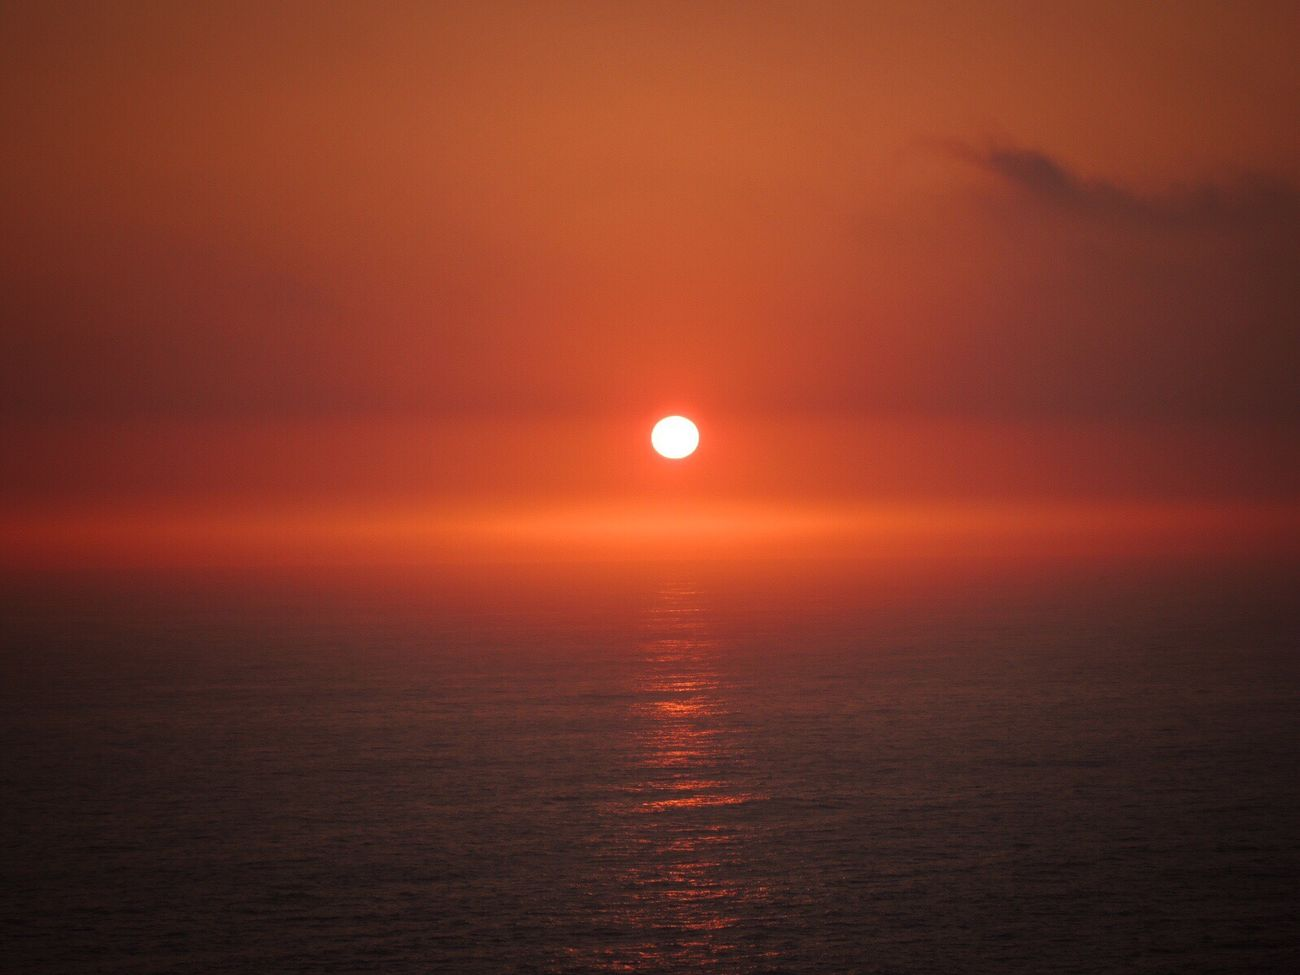 Sunset Sunset_collection Sunset Today Sun Orange Sunset Amazing Sunset Sunset And Sea Sea View... Love It!  Enjoying The Sunset Sun Reflection In Front Of Sunset_captures Sunset Lovers Perfect Sunset The Purist (no Edit, No Filter) The Great Outdoors - 2017 EyeEm Awards